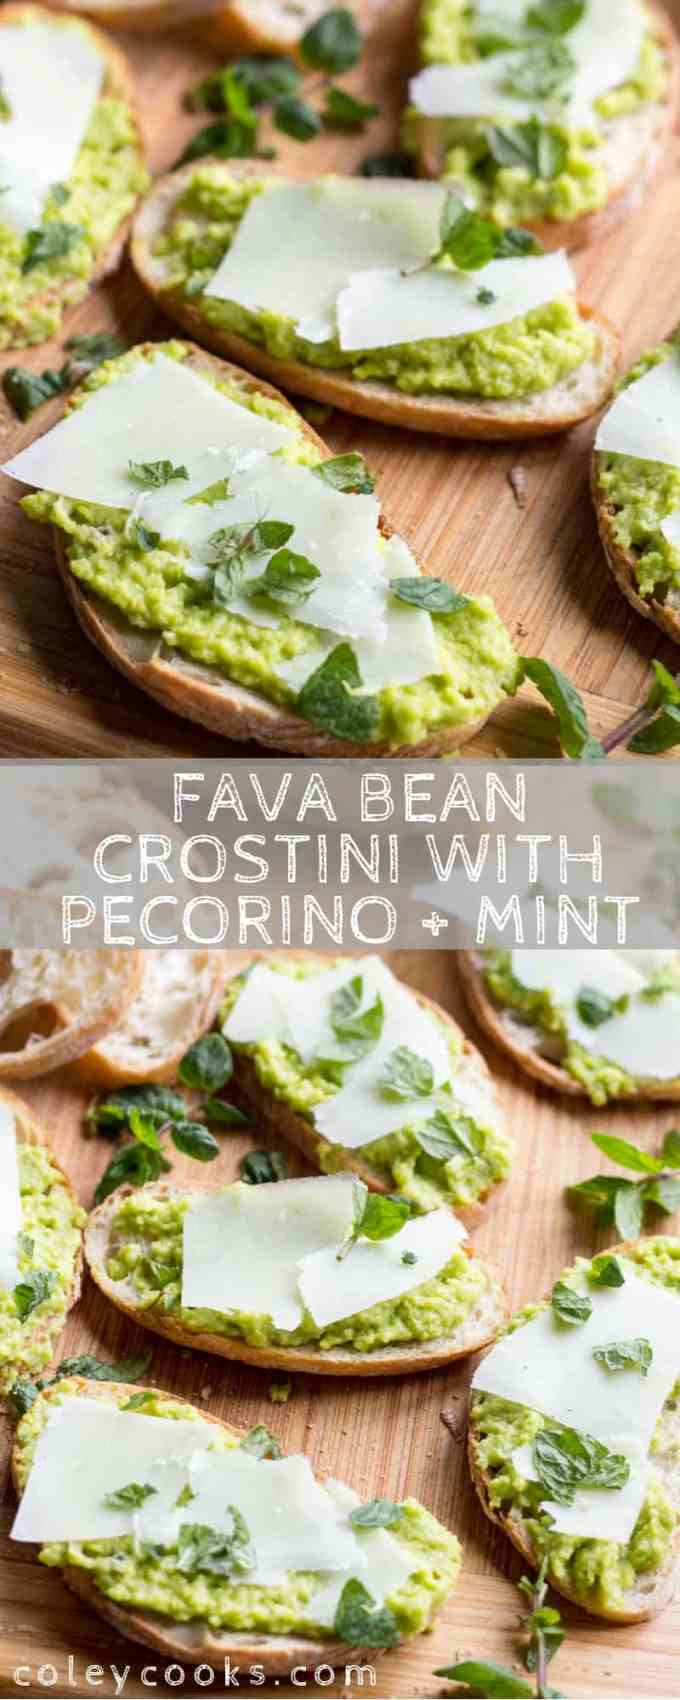 FAVA BEAN CROSTINI with Pecorino + Mint | Easy, delicious Spring appetizer perfect for Easter or Mother's Day! #easy #spring #appetizer #recipe #easter #fava #beans #pecorino #crostini | ColeyCooks.com